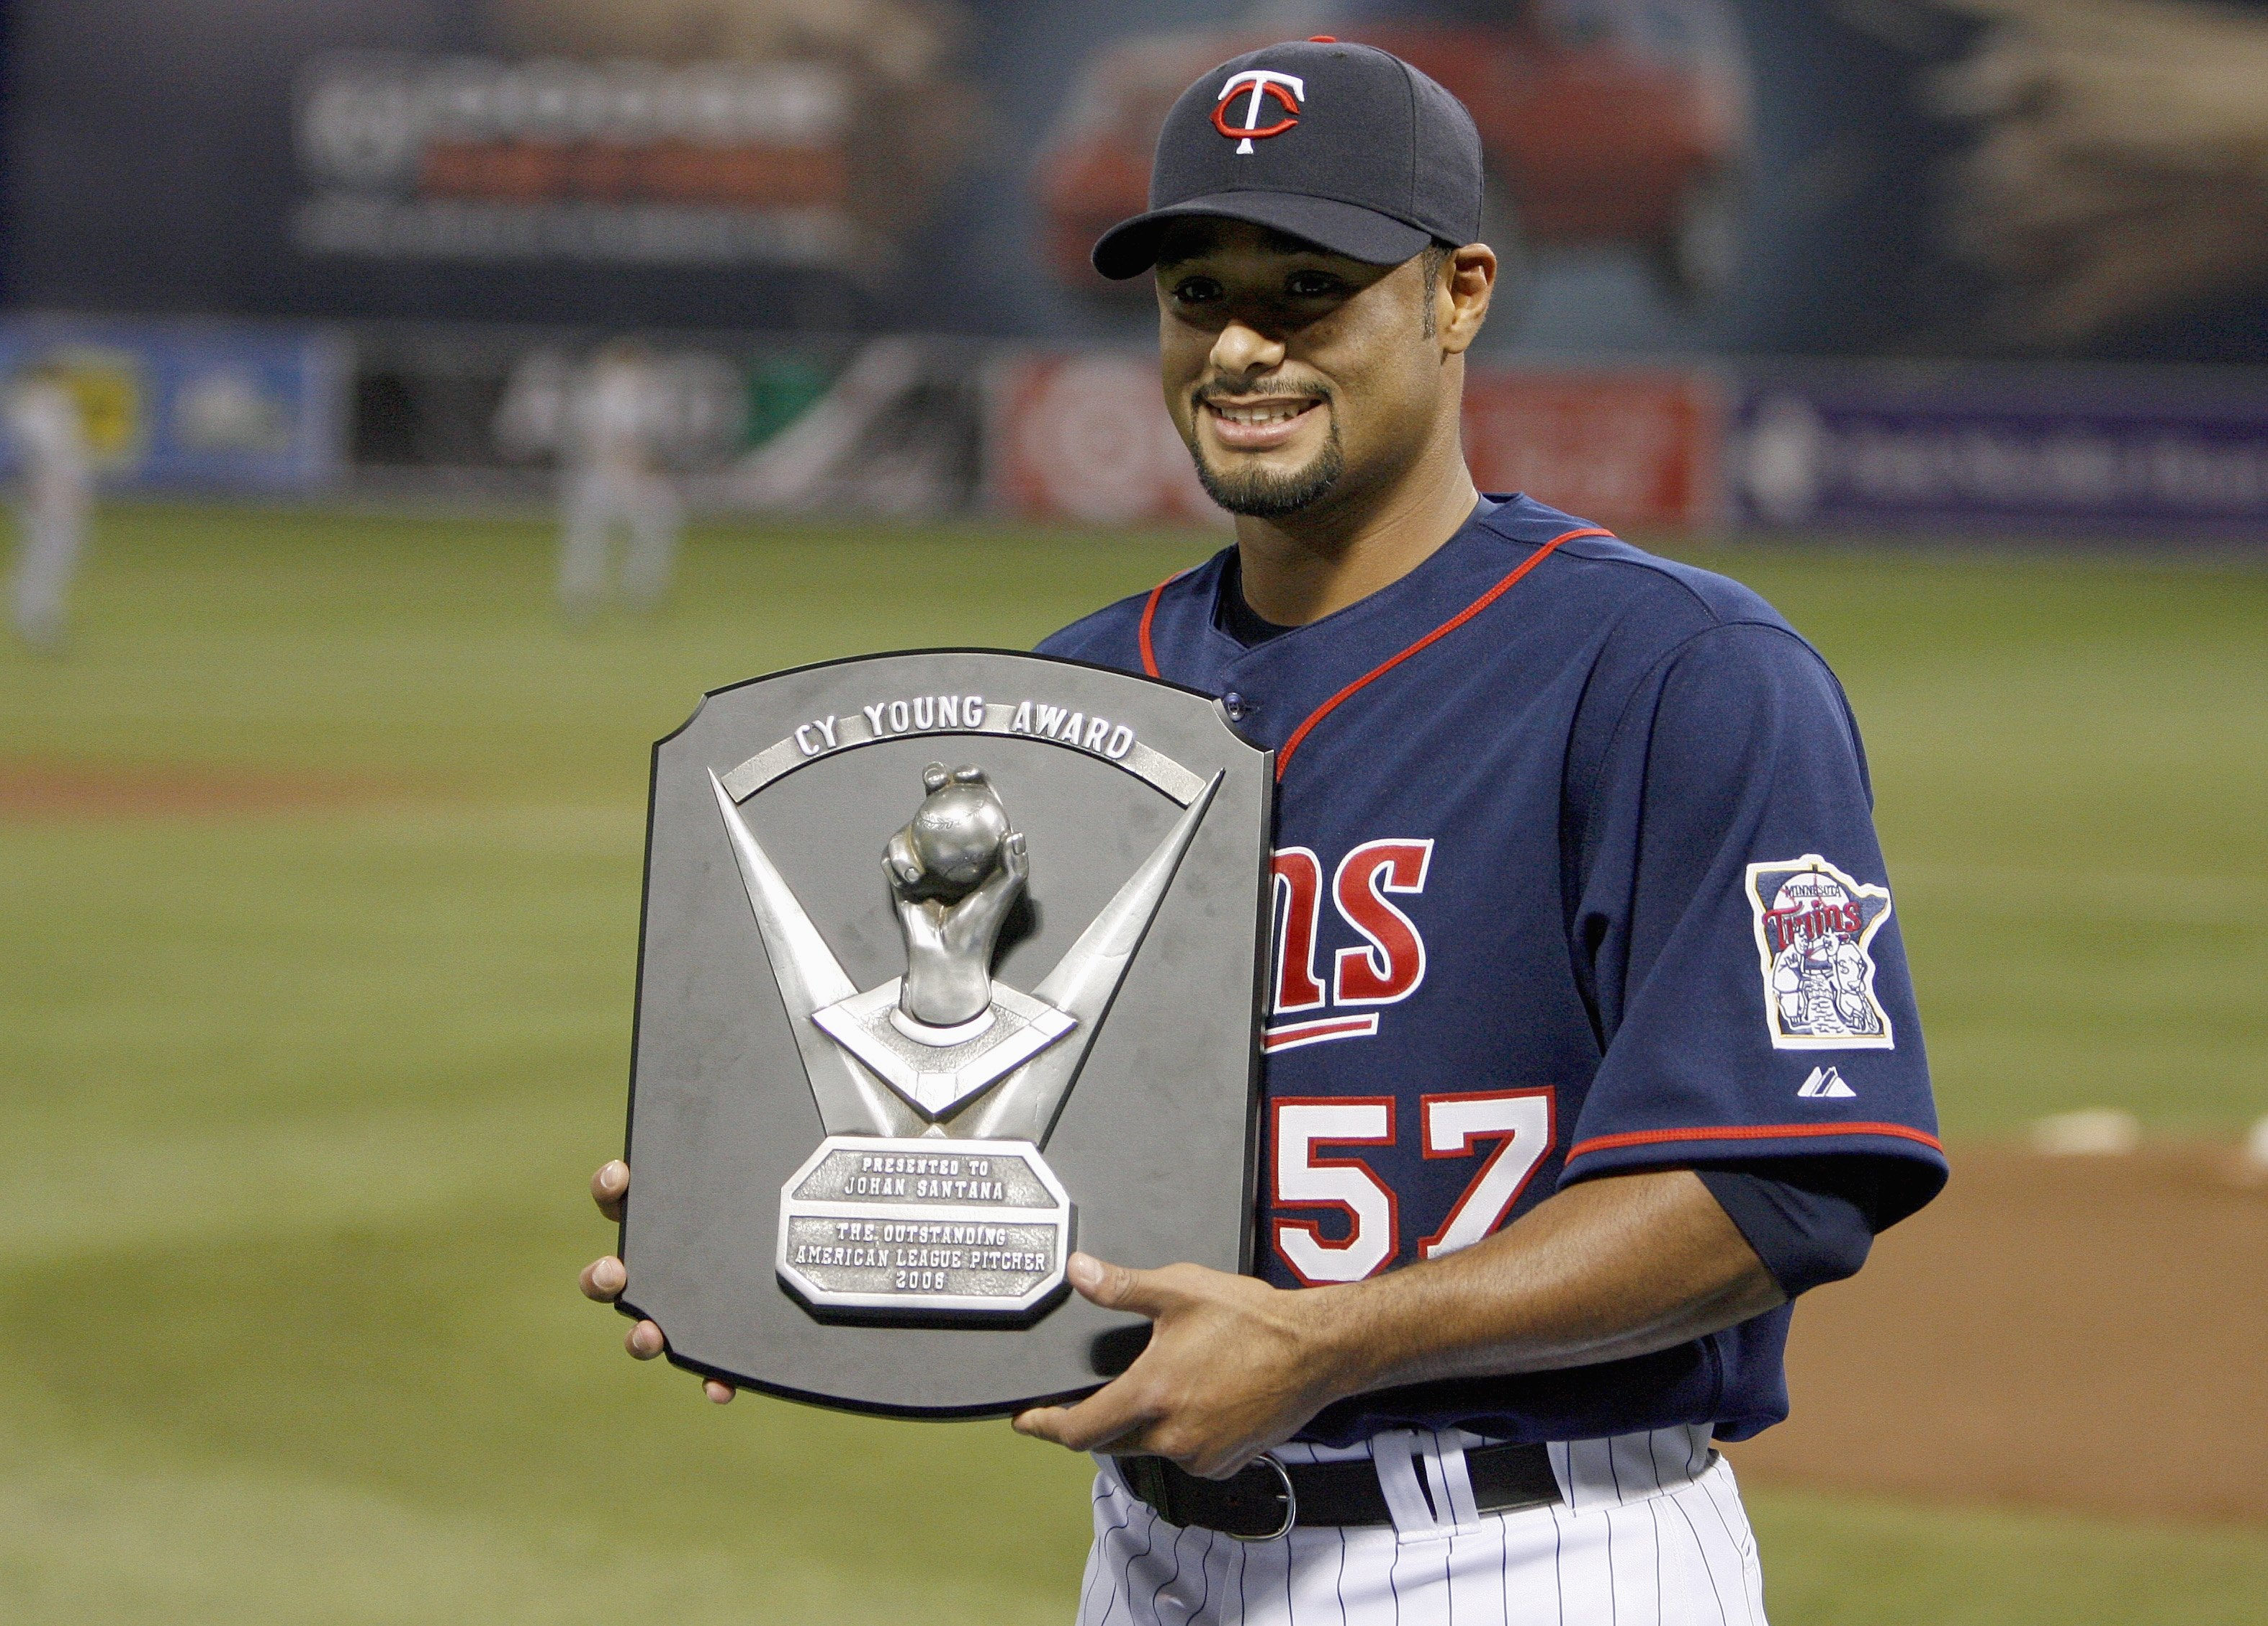 MINNEAPOLIS, MN - APRIL 14: Johan Santana #57 of the Twins receives the 2006 Cy Young Award on April 14, 2007 at the Metrodome in Minneapolis, Minnesota. (Photo by Scott A. Schneider/Getty Images)